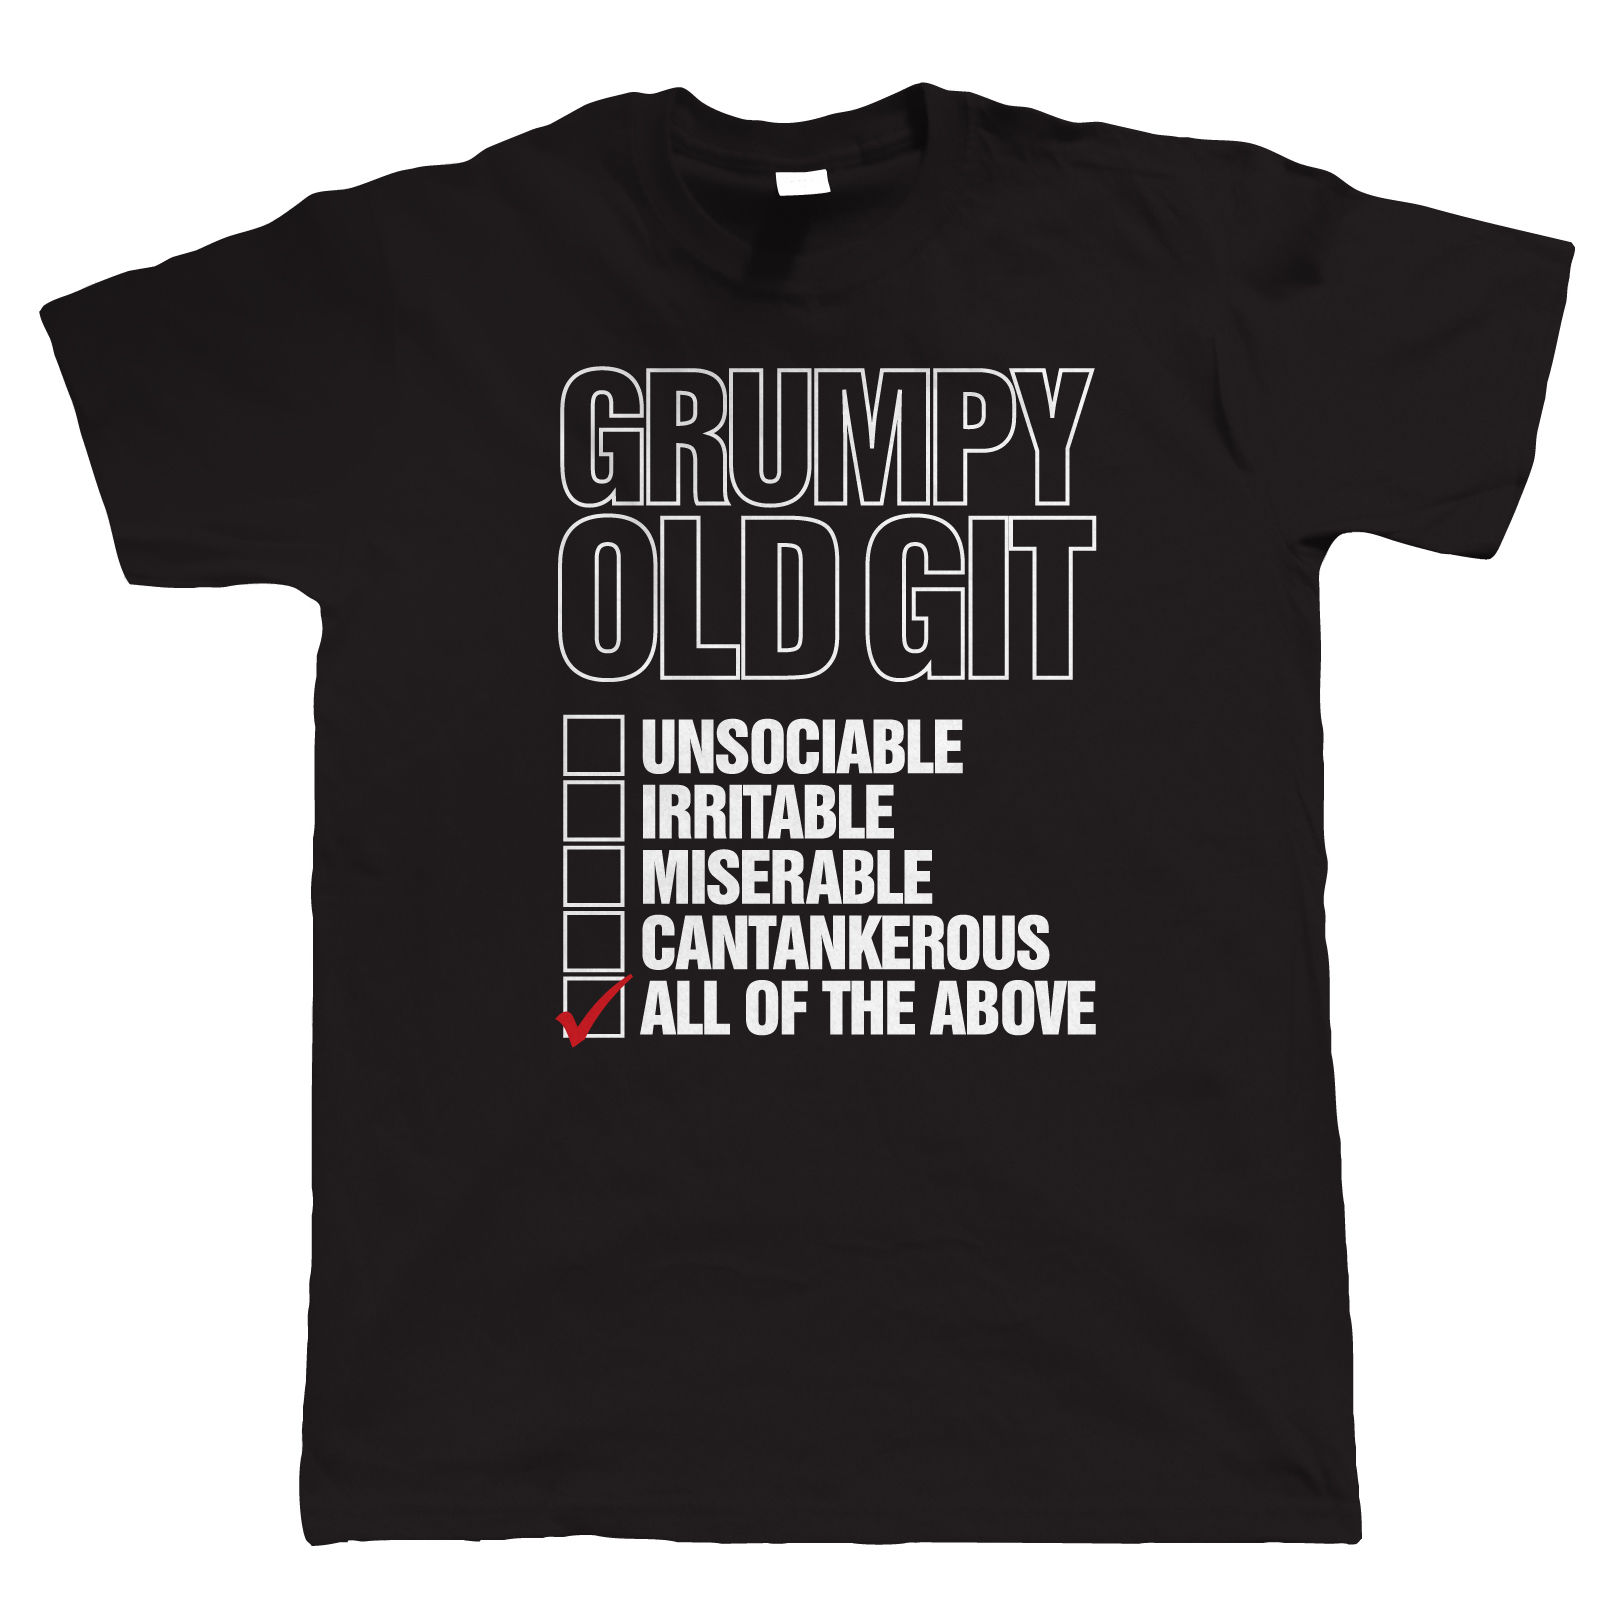 Git grumpy old man checklist, t-shirt funny man